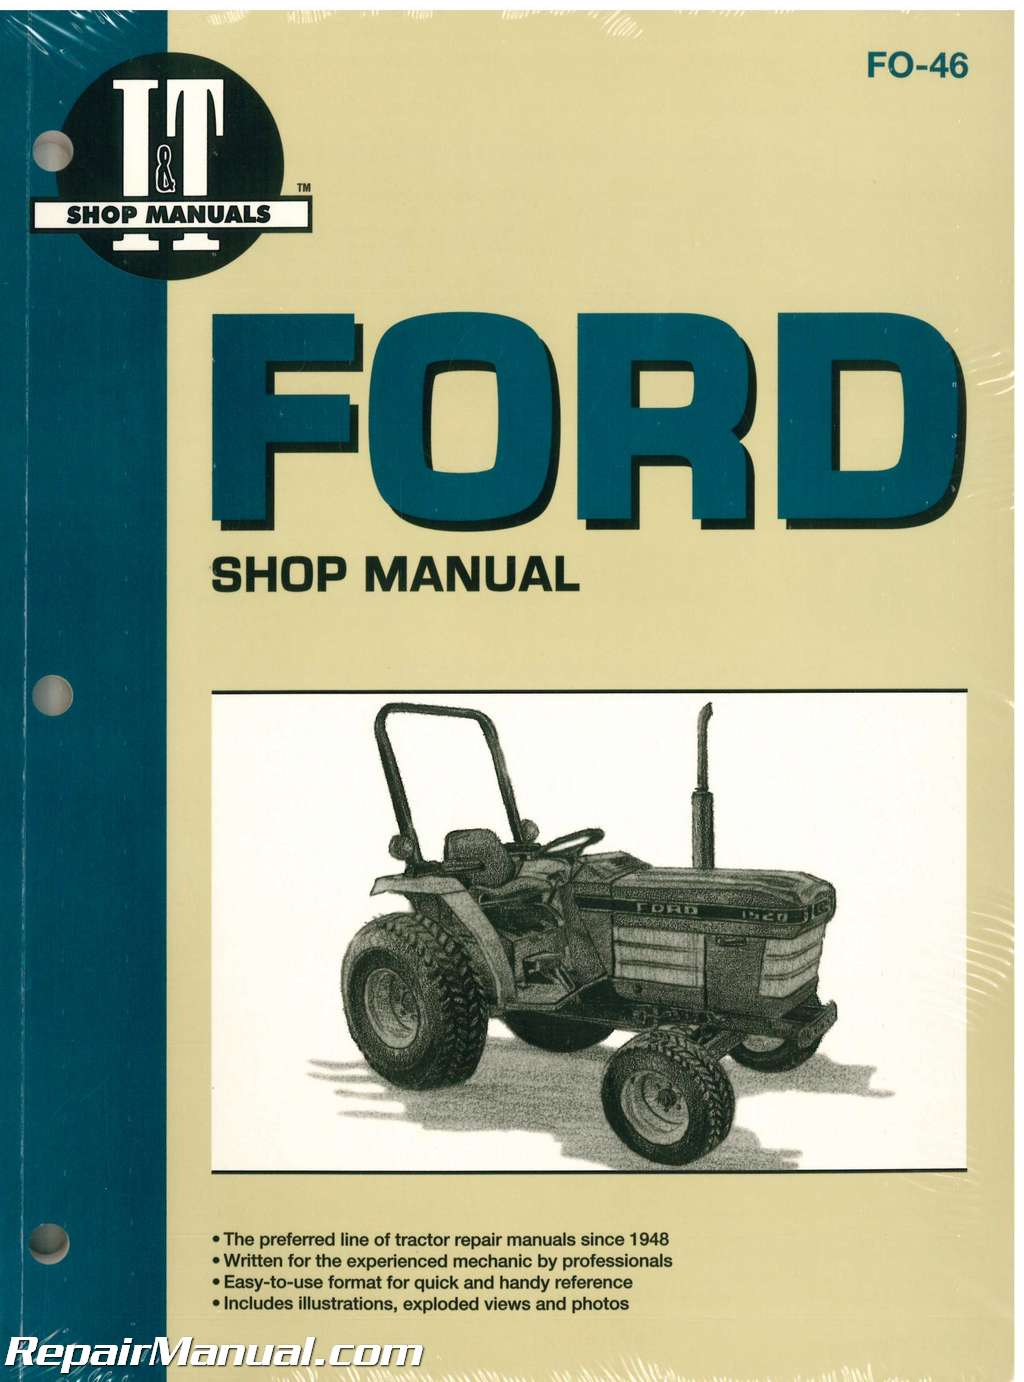 ford new holland 1120 1220 1320 1520 1720 1920 2120 tractor manualFord 1900 Wiring Diagram #14